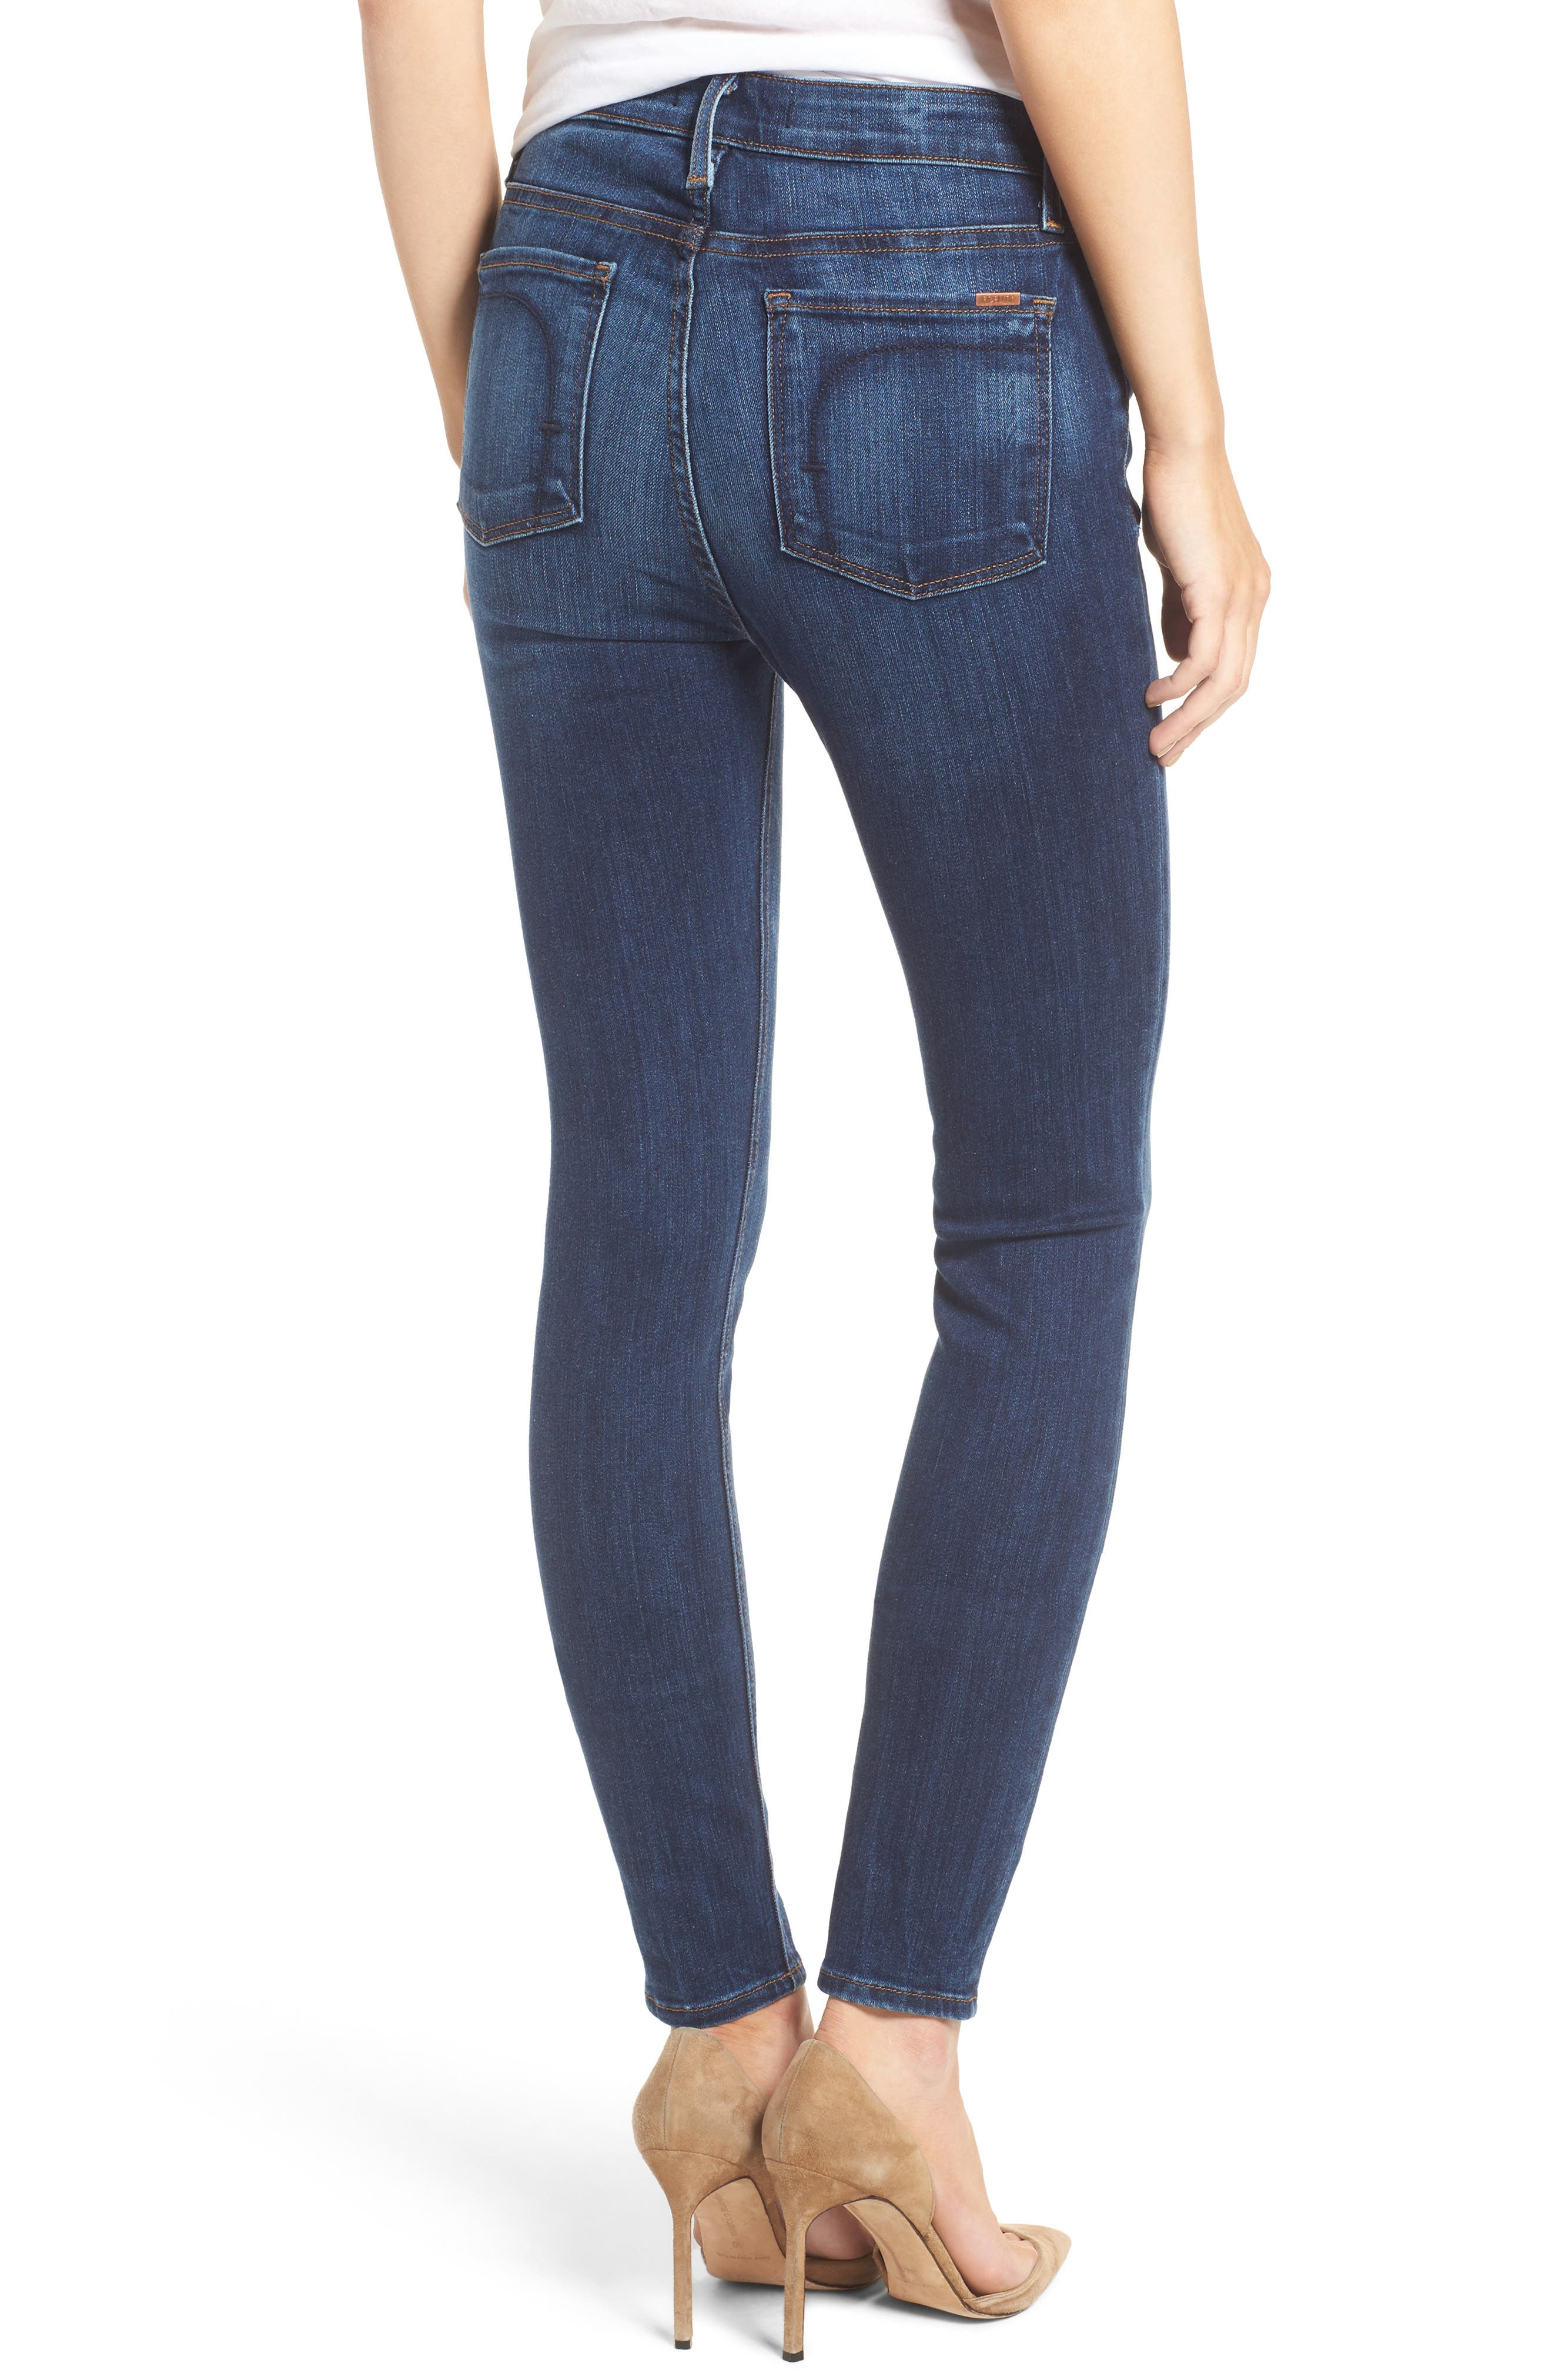 Gwen High Waist Skinny Jeans,                             Alternate thumbnail 2, color,                             Liverpool